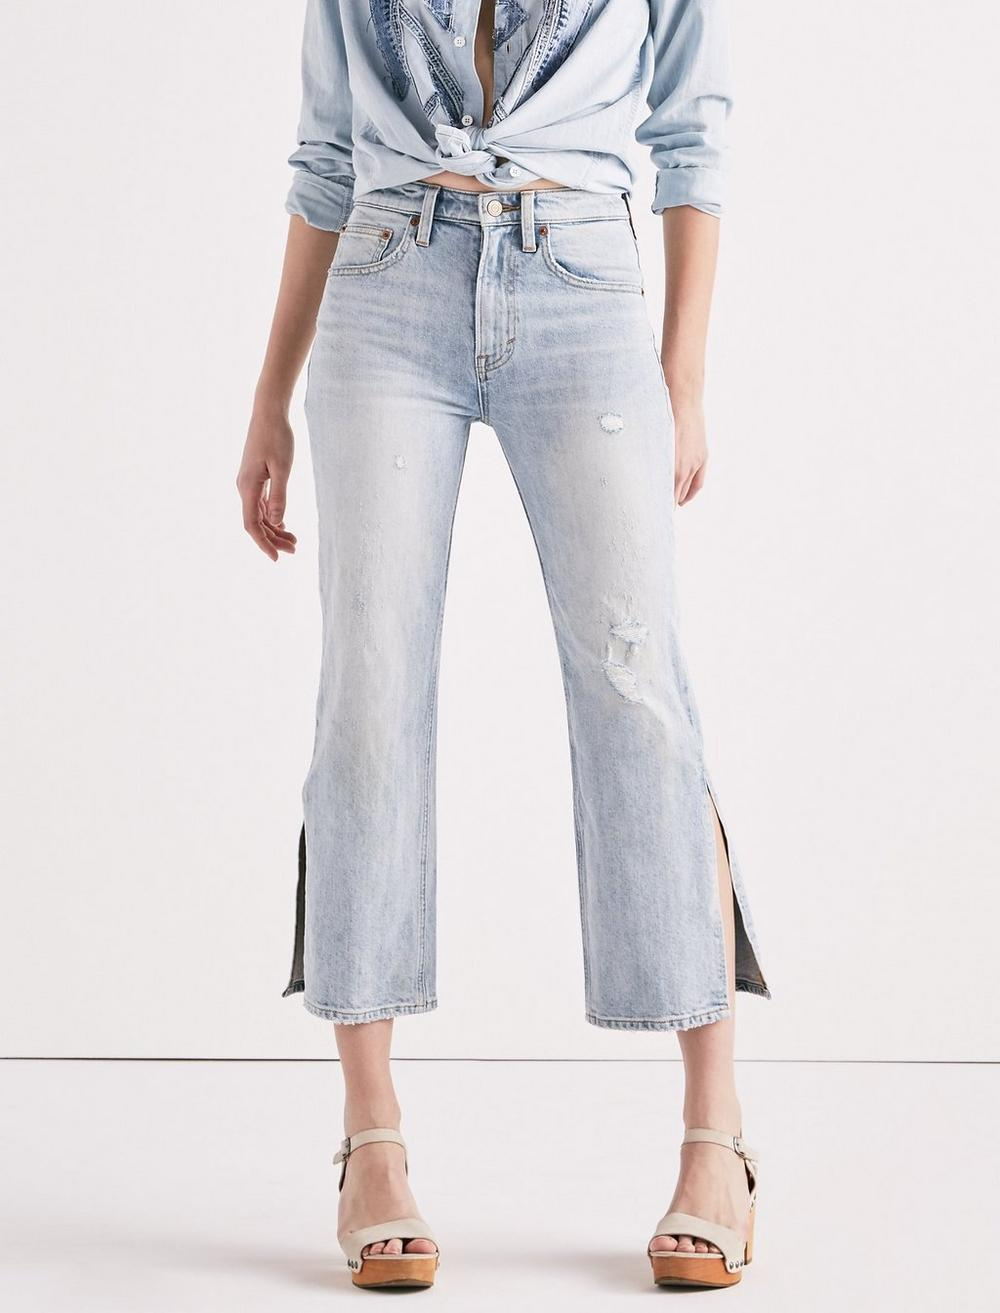 LUCKY PINS HIGH RISE SIDE SLIT JEAN IN MIRA MAR, image 1